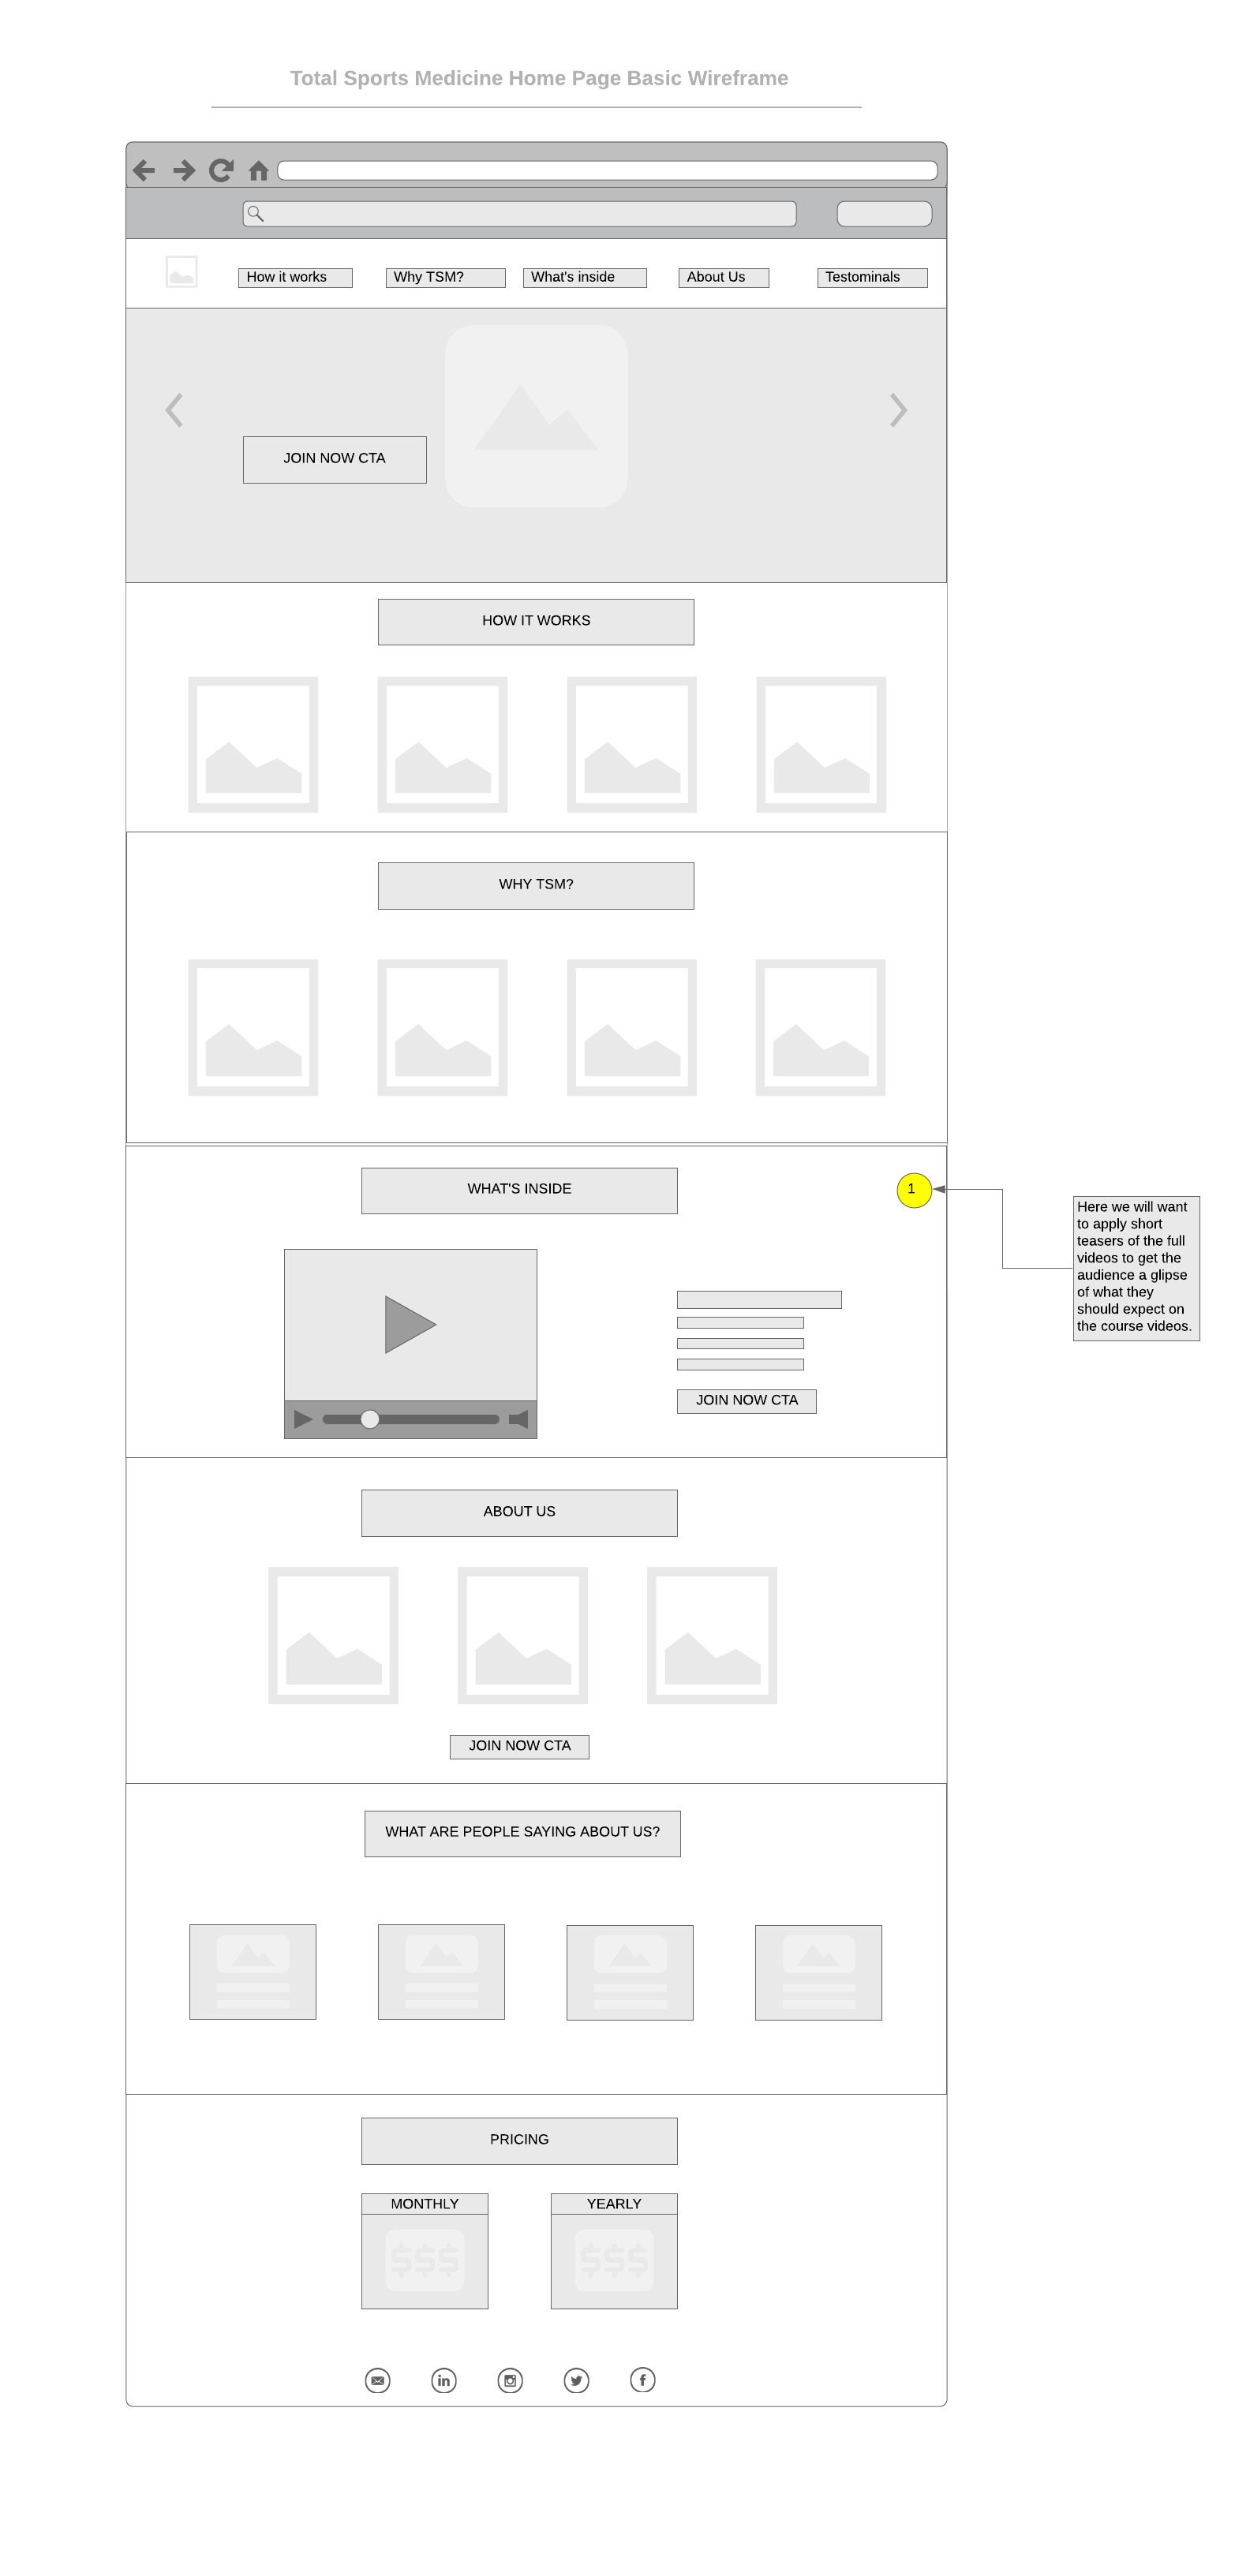 Total Sports Medicine Home Page Basic Wireframe.jpeg